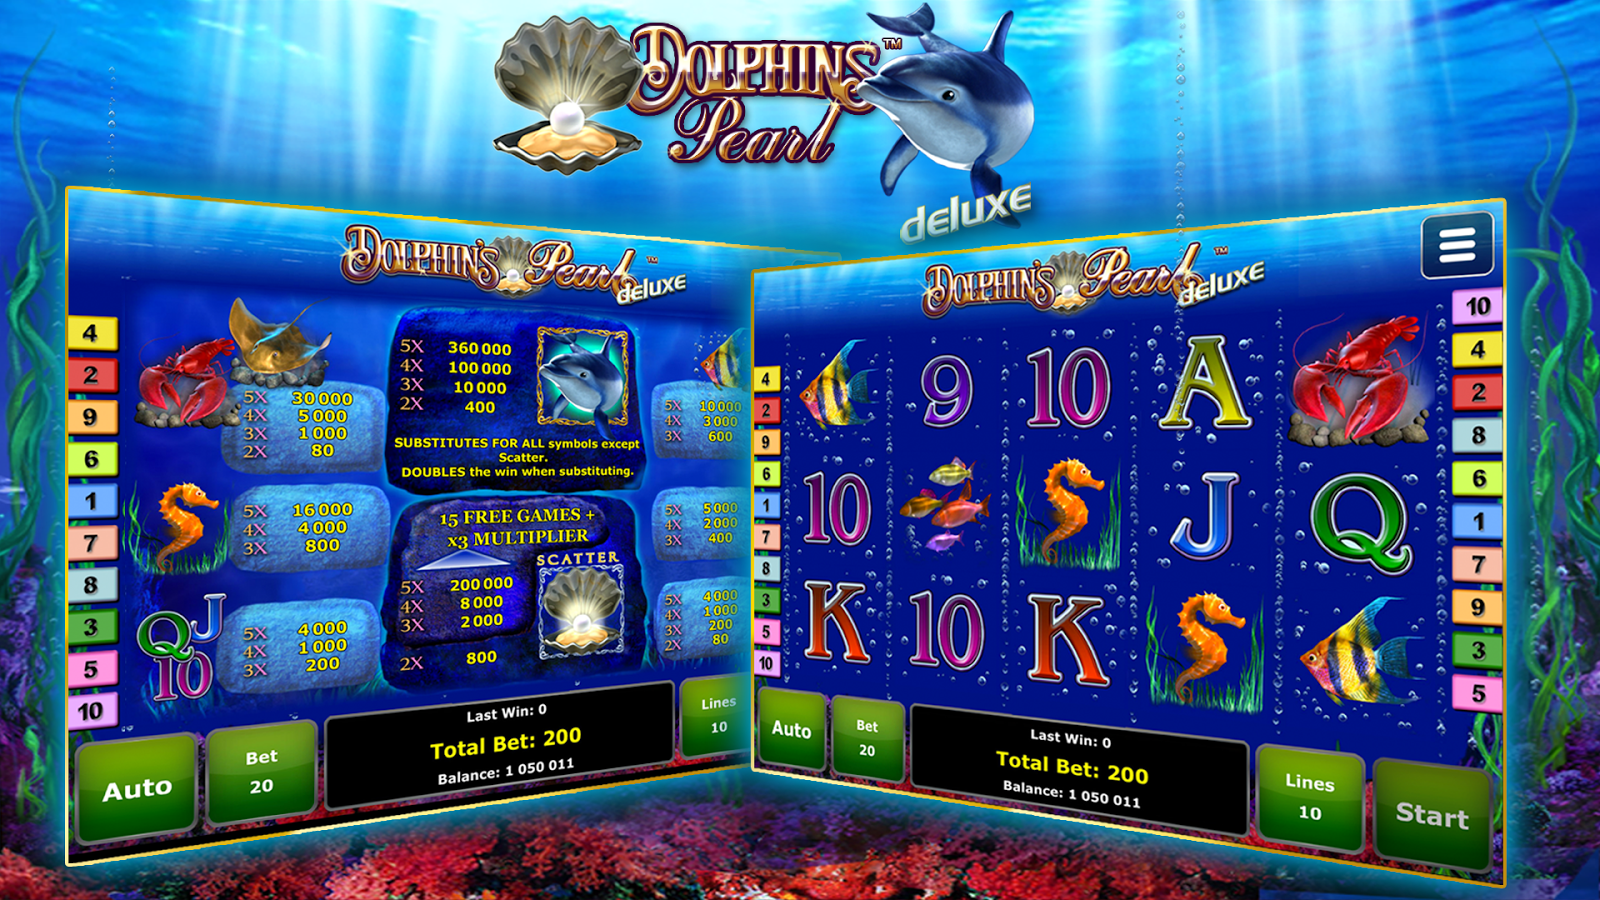 gametwist casino online book of ra automat